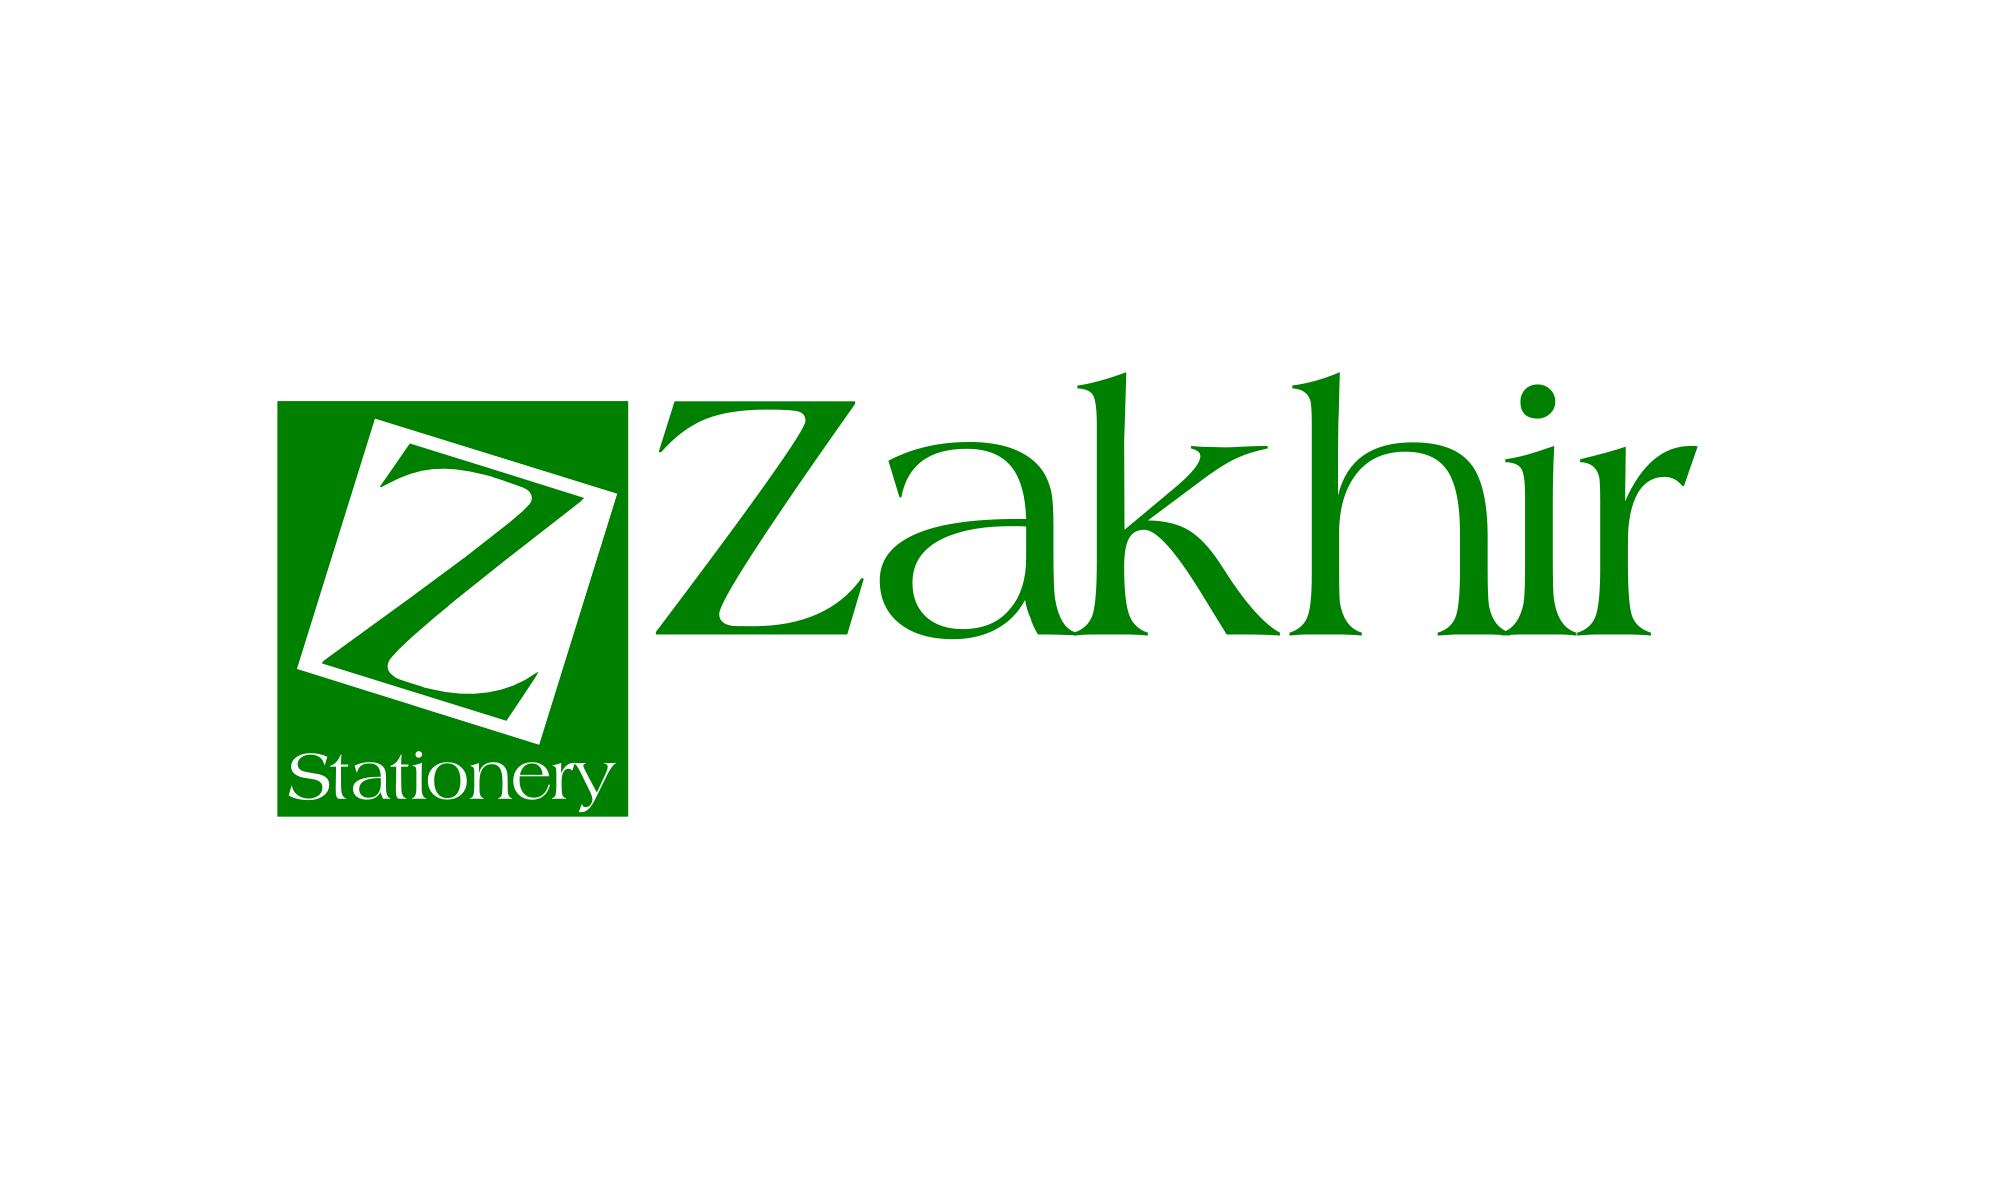 Logo Design by Gheburaseye - Entry No. 14 in the Logo Design Contest Zakhir Logo Design.